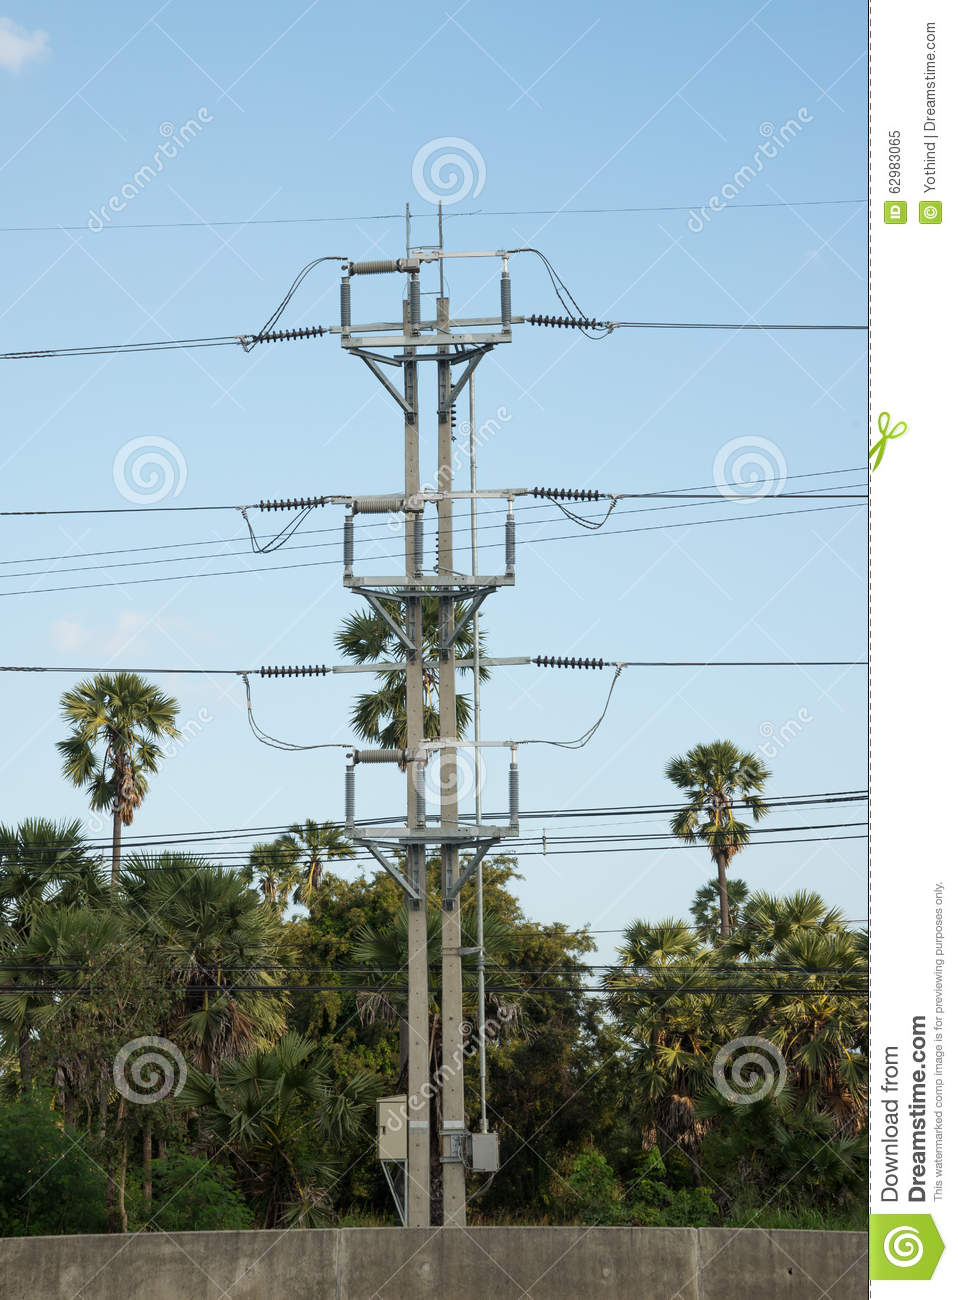 Power line switch gear stock image. Image of wire, industry - 62983065